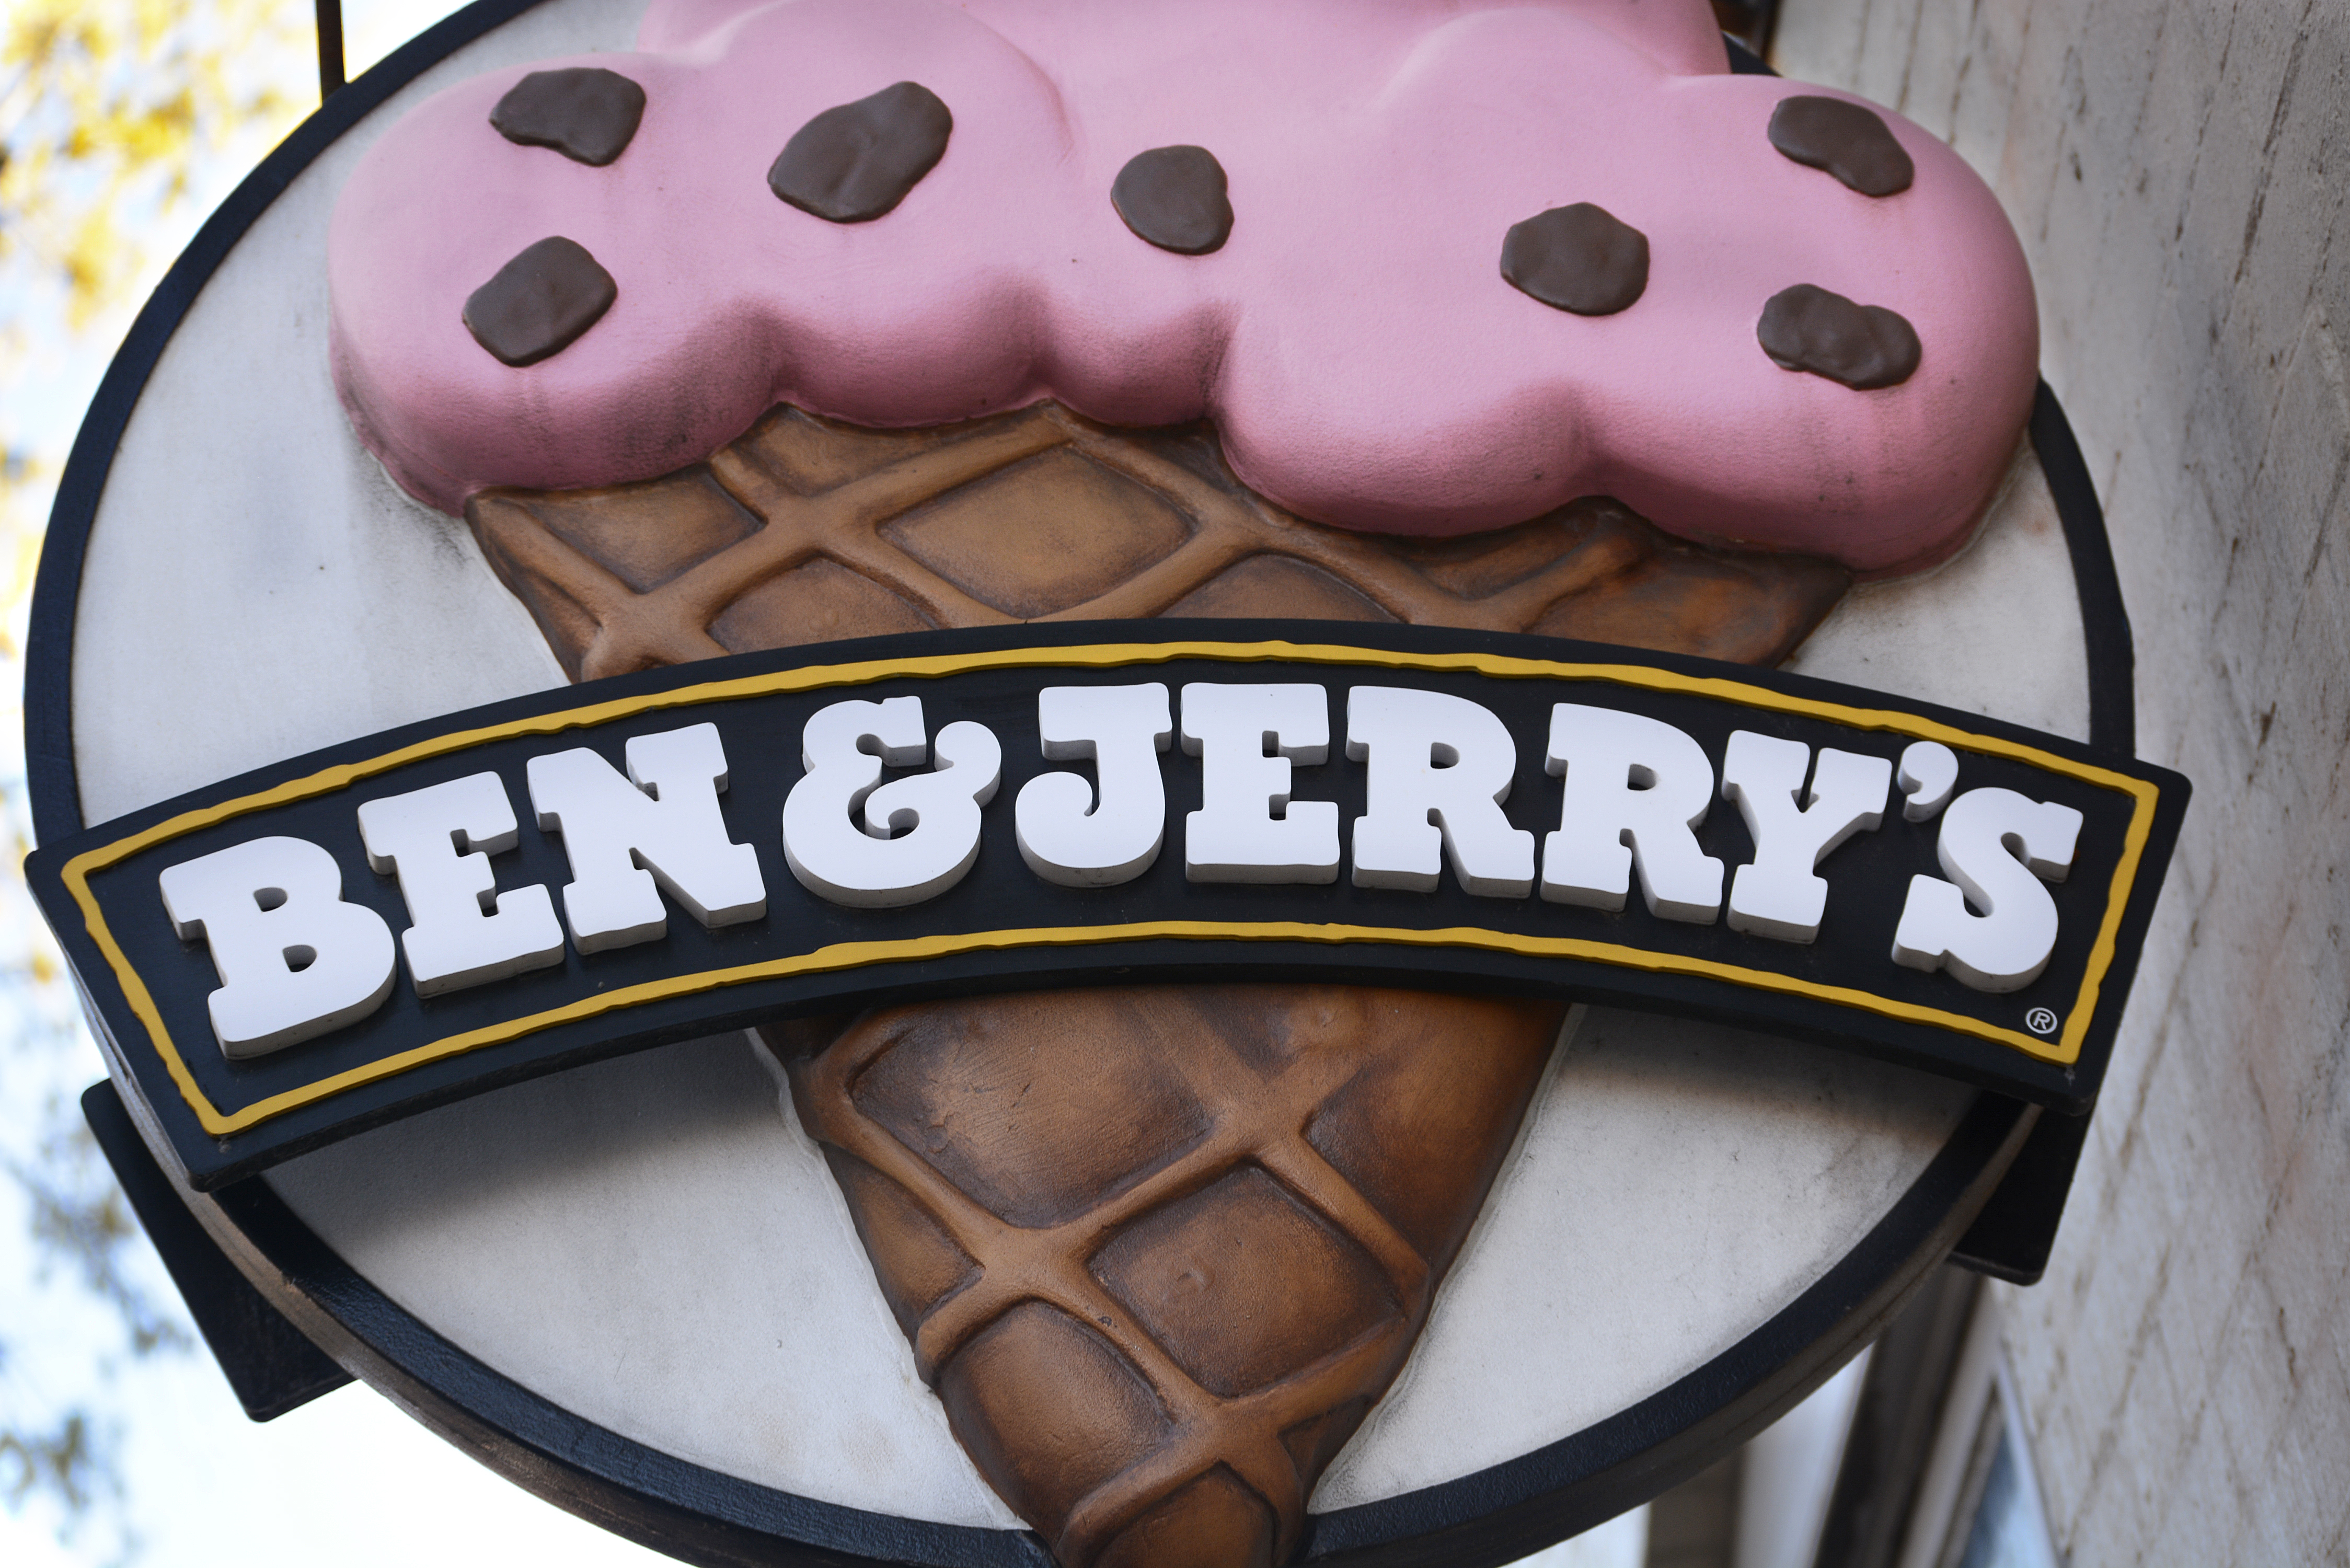 ALEXANDRIA, VA - APRIL 20, 2018:  A business sign hangs over the entrance to a Ben & Jerry's ice cream shop in the Old Town section of Alexandria, Virginia. (Photo by Robert Alexander/Getty Images)